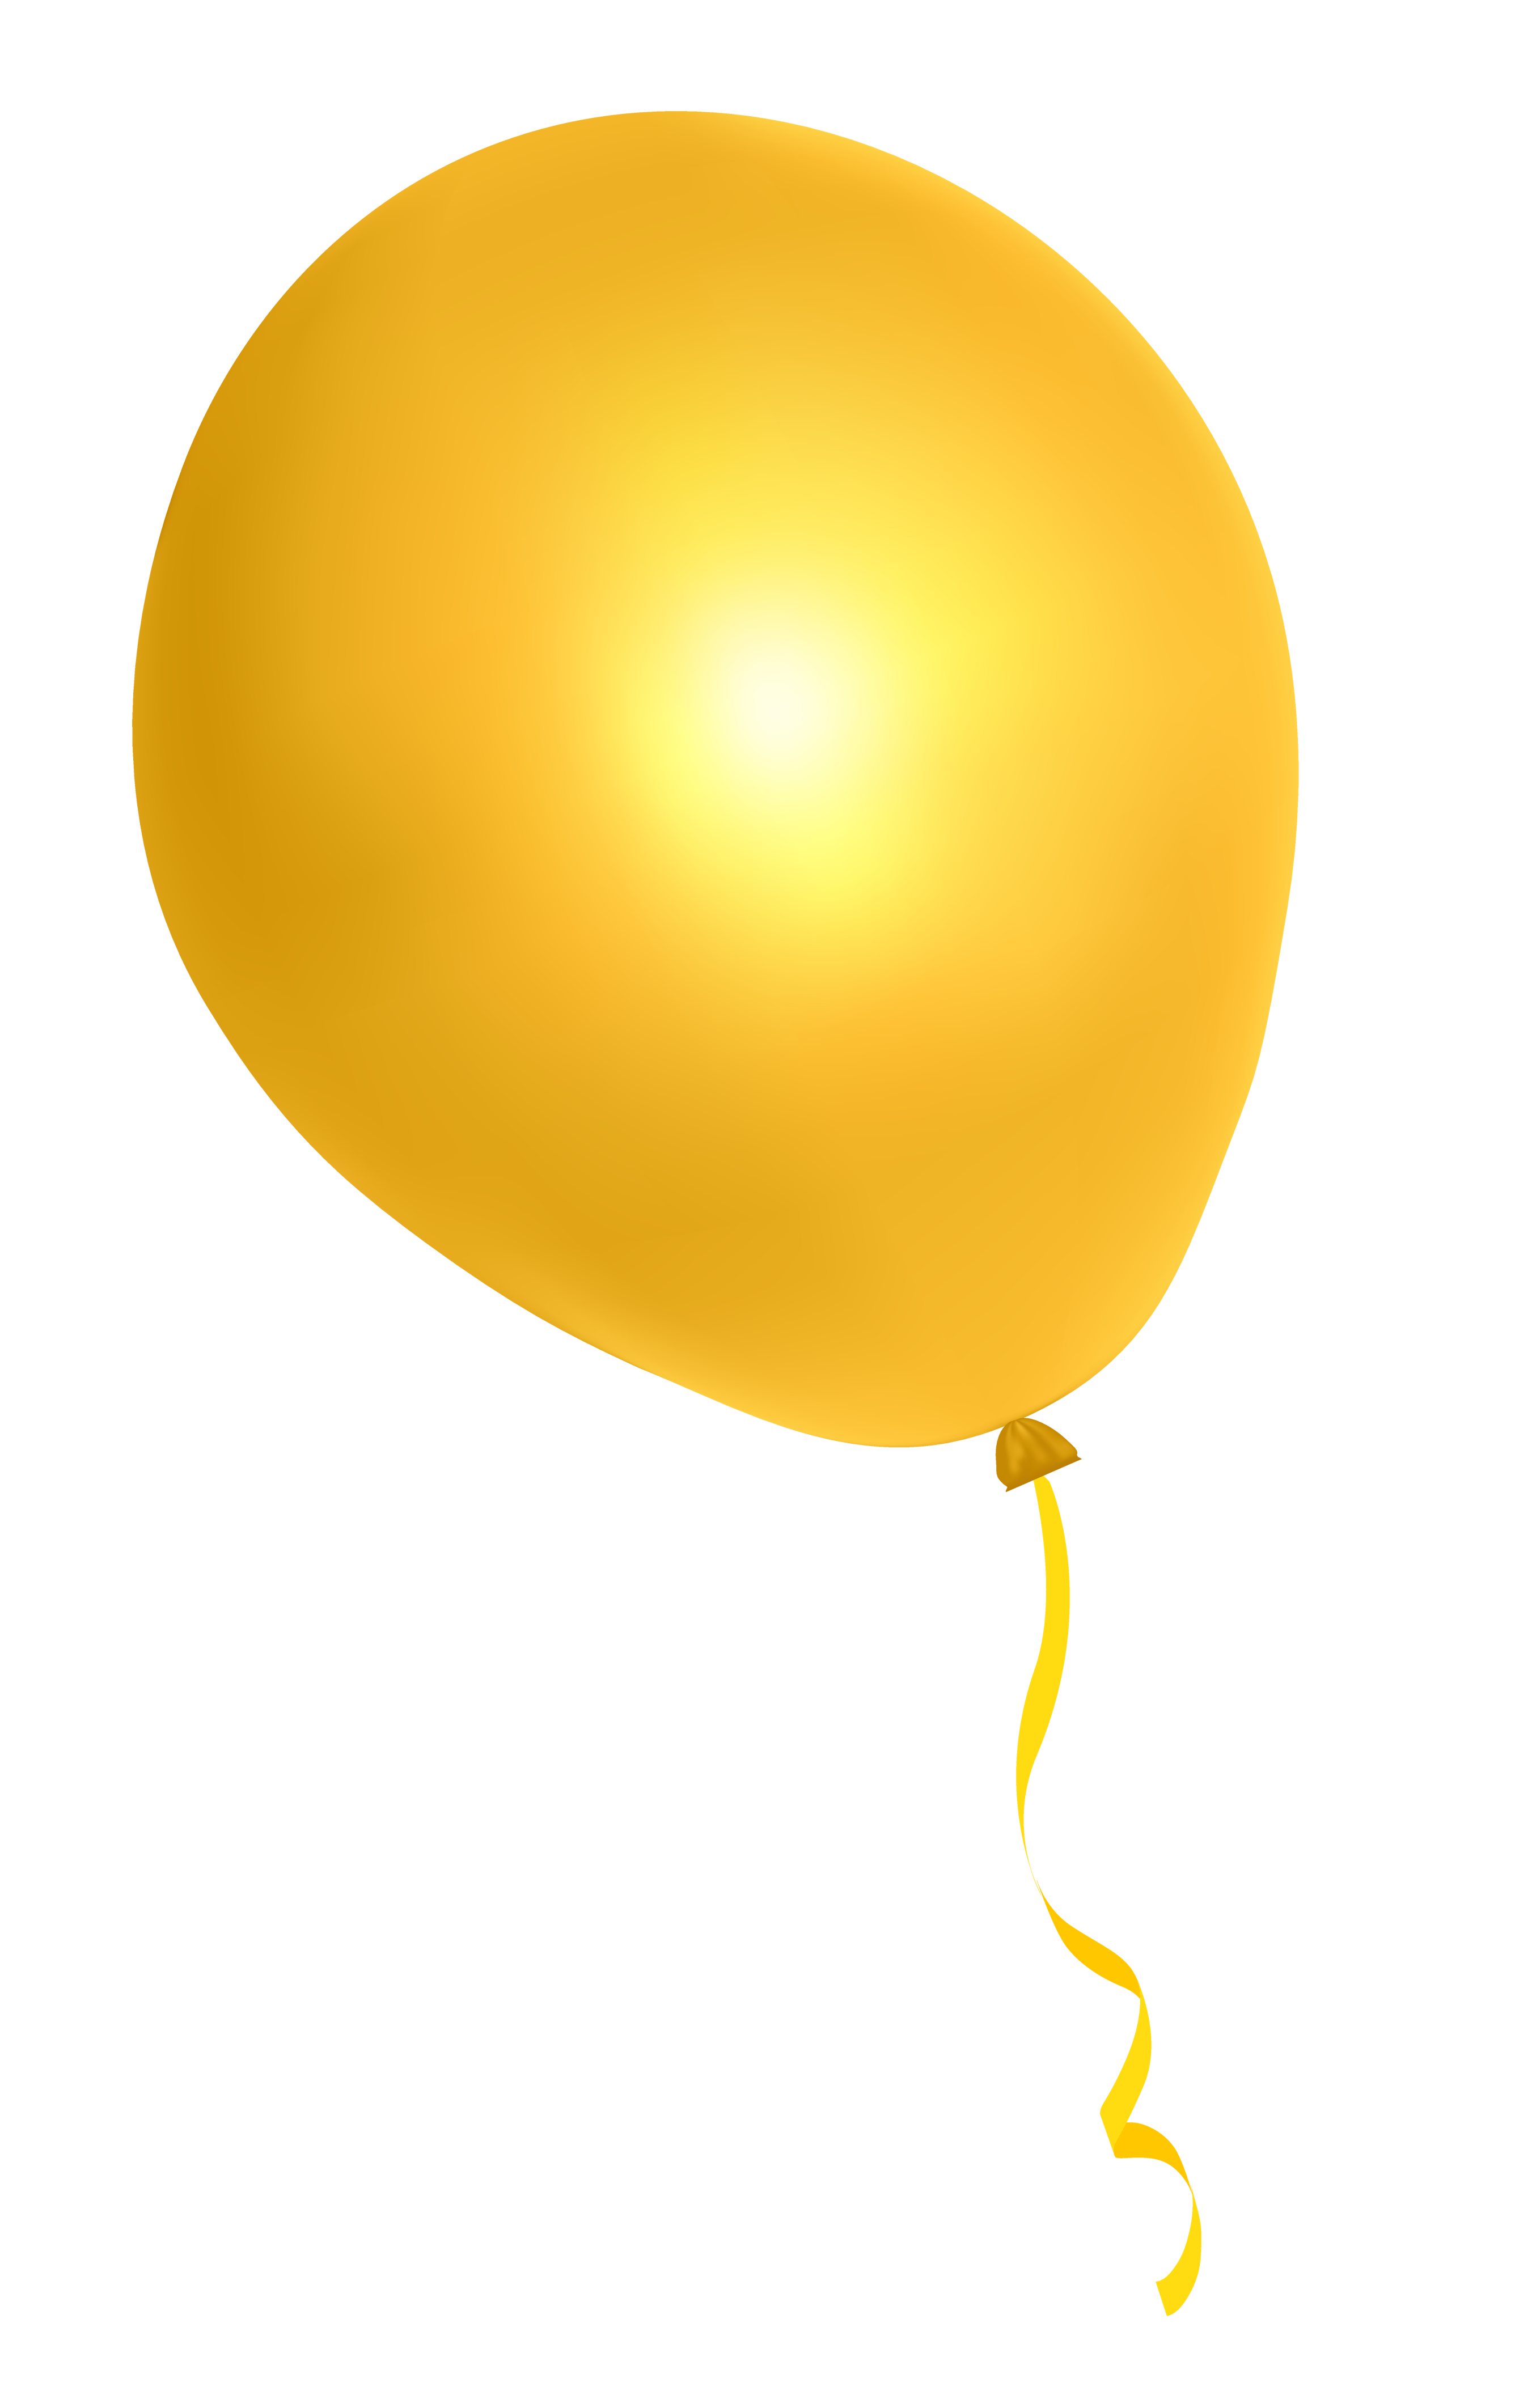 Balloon.png - balloon-free-PNG-transparent-background-images-free-download ...